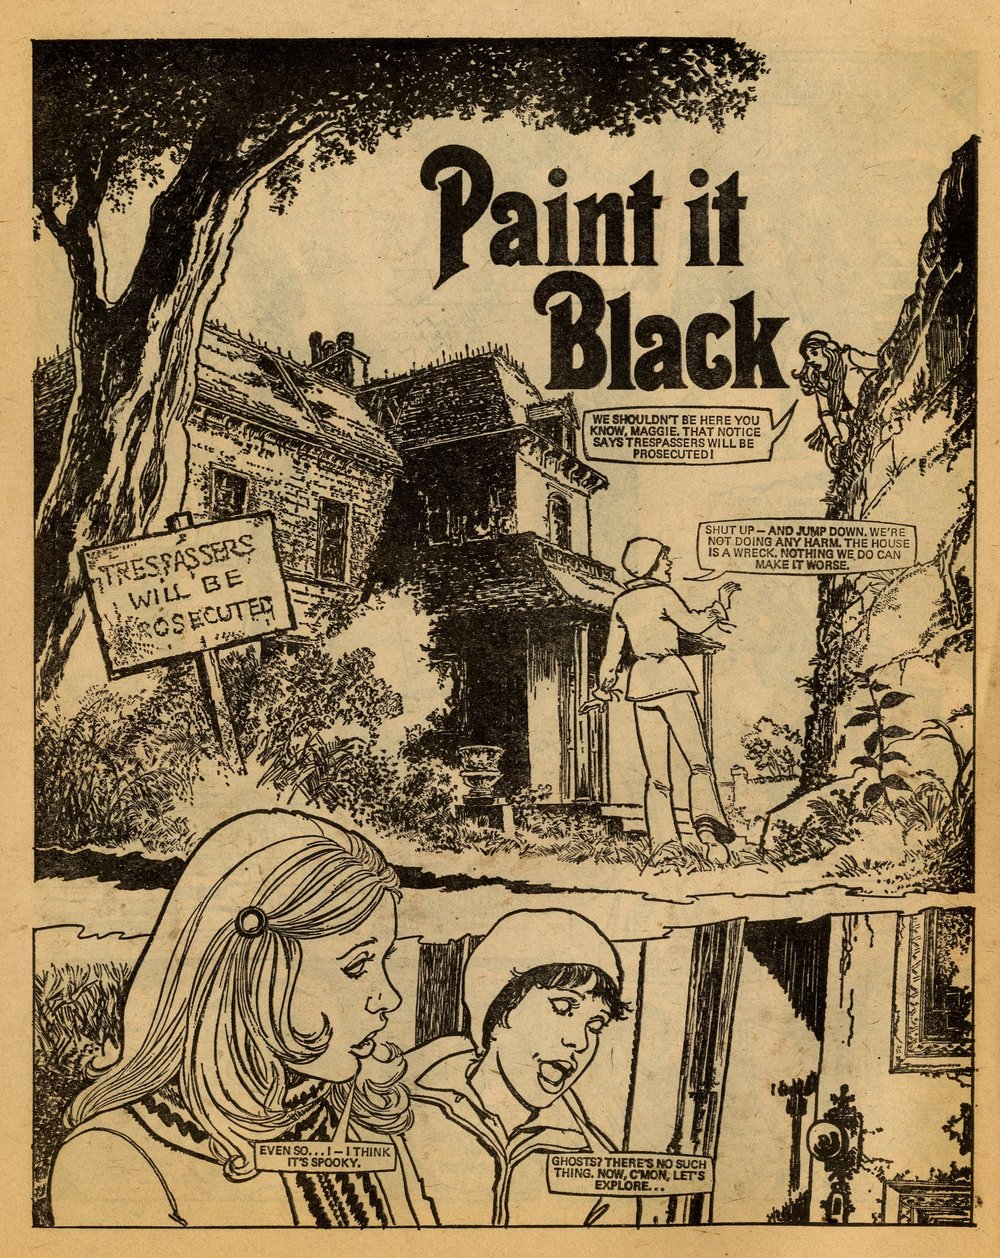 Paint it Black: Alan Davidson (writer), Brian Delaney (artist)